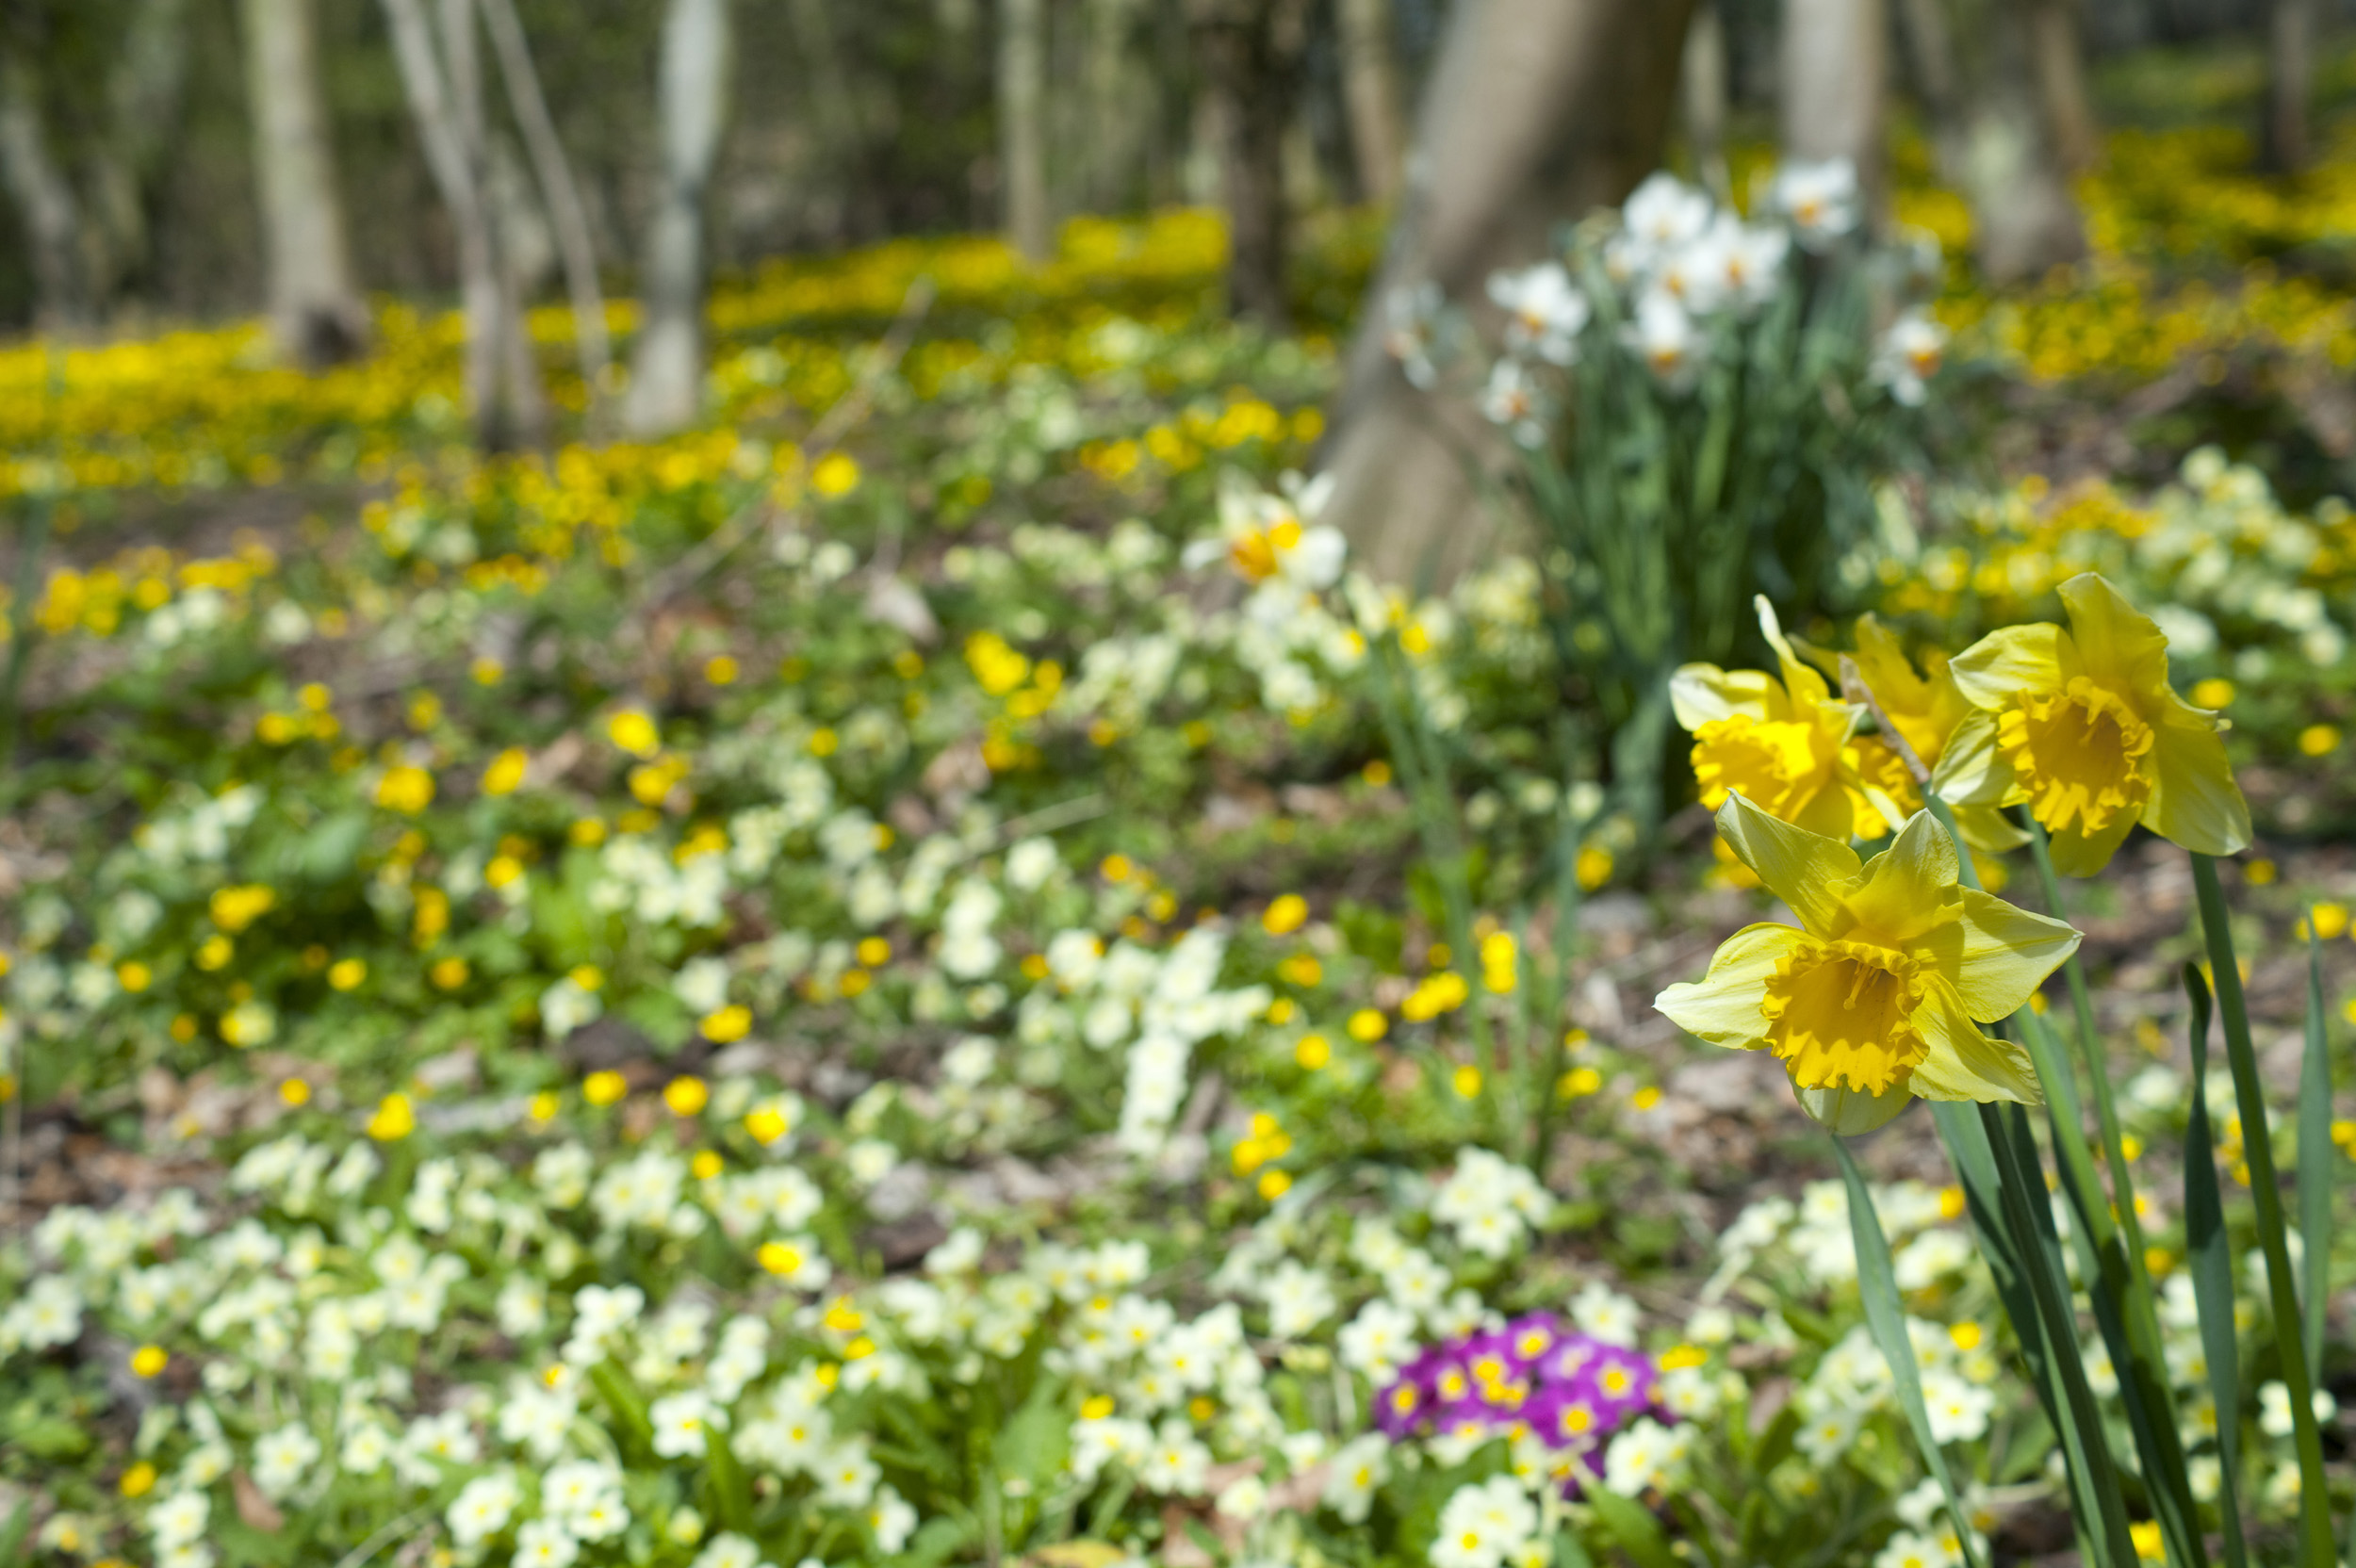 easter_woodland_flowers.jpg - Closeup image of yellow spring daffodils blooming in an Easter woodland carpeted with colourful wildflowers